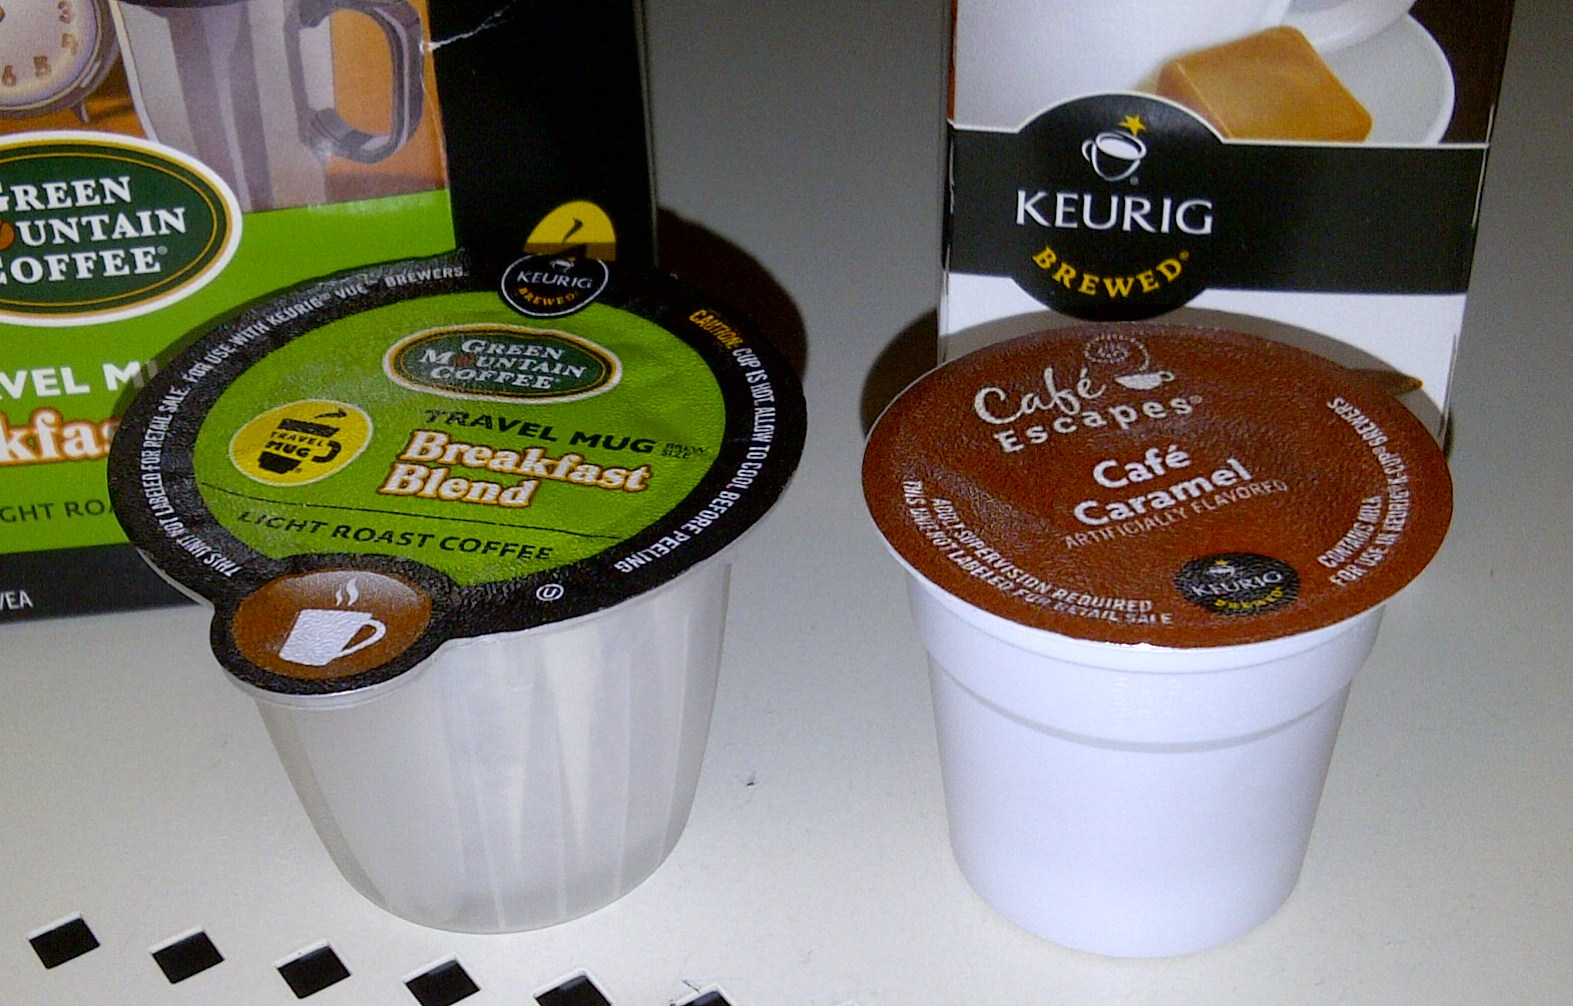 Shows A Vue Pack Next To K Cup For Size Comparision